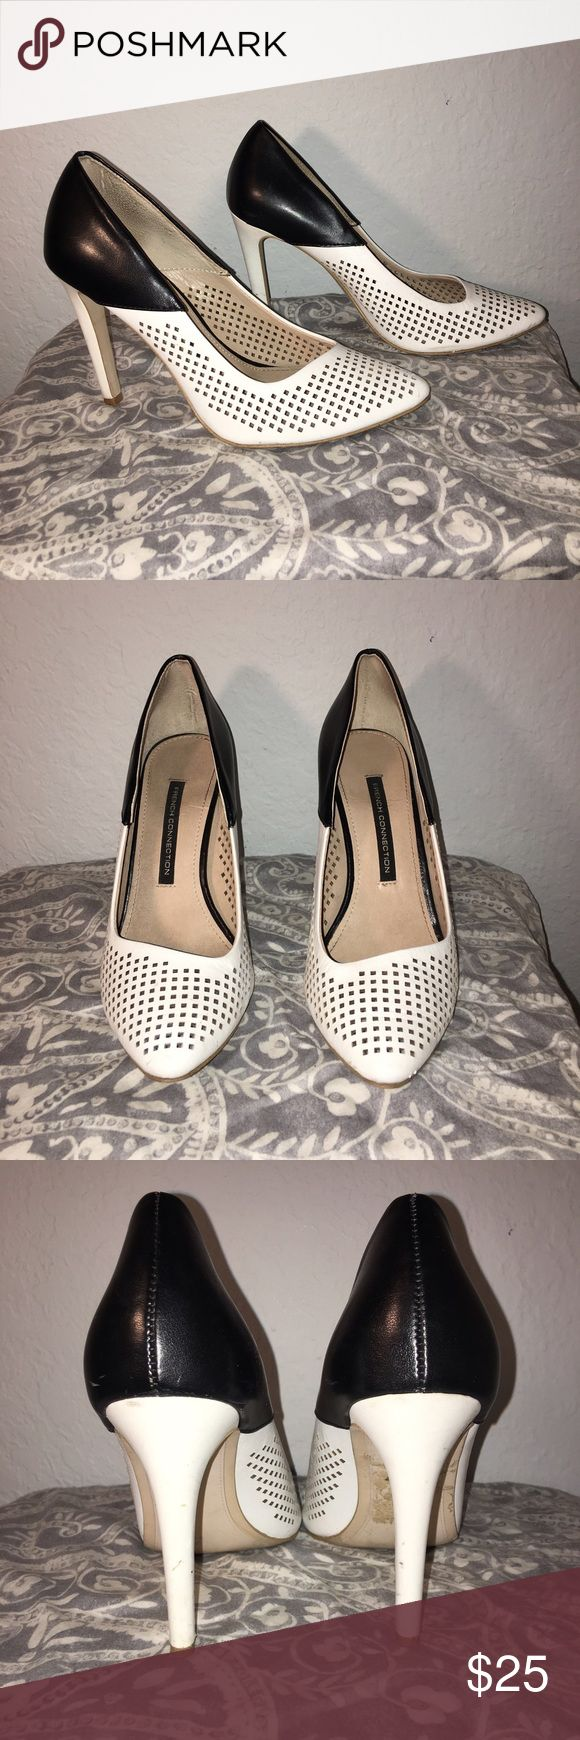 French Connection- Black and White Women's Pumps Cute, classy, and spunky pumps from French Connection! Worn a bit for work, and have a few minor flaws on the heels. Otherwise, in great shape! Comment questions! On Ⓜ️ for less! French Connection Shoes Heels